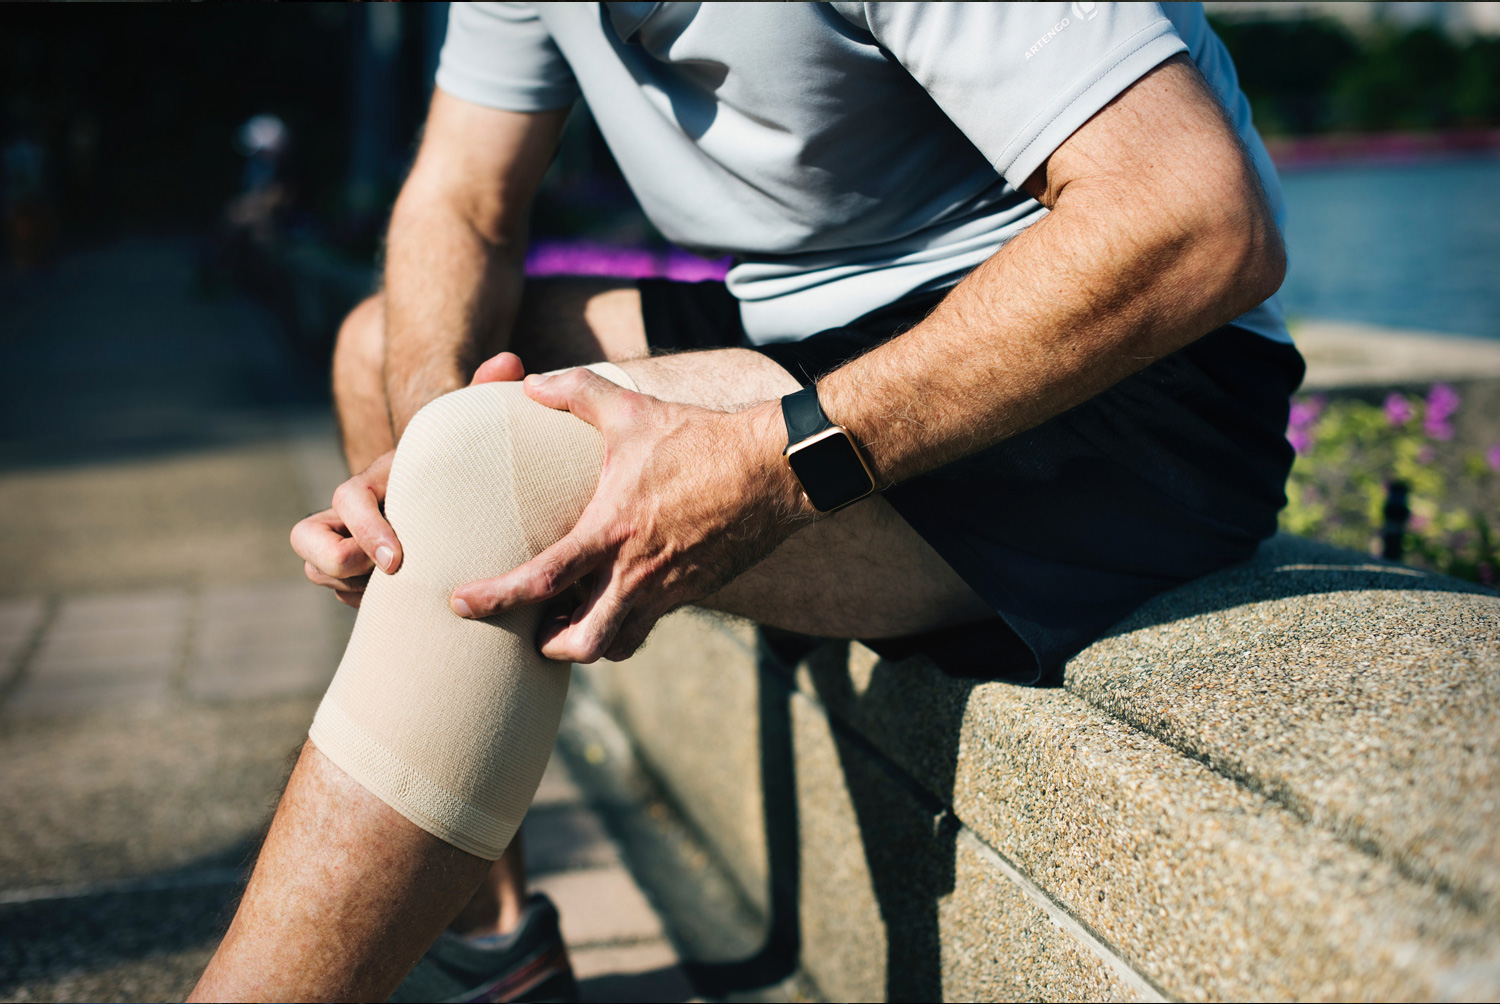 Zimmer Knee Implant – Wayne Wright Injury Lawyer LLP